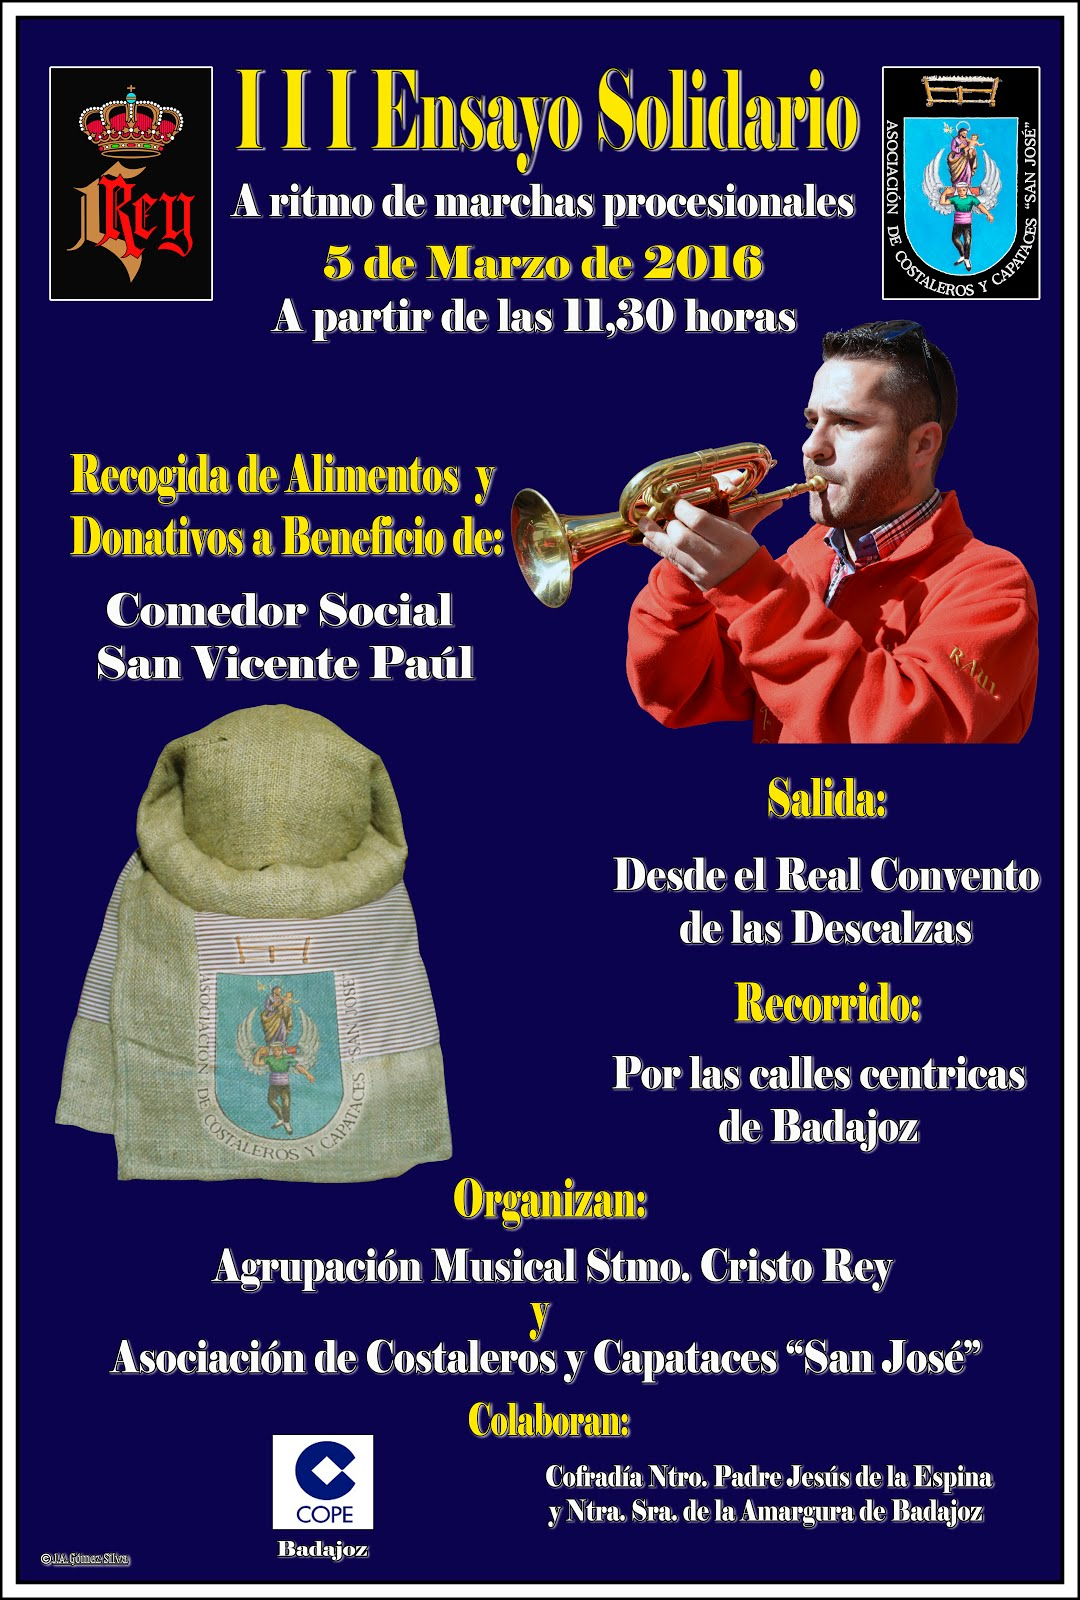 Cartel III Ensayo Solidario